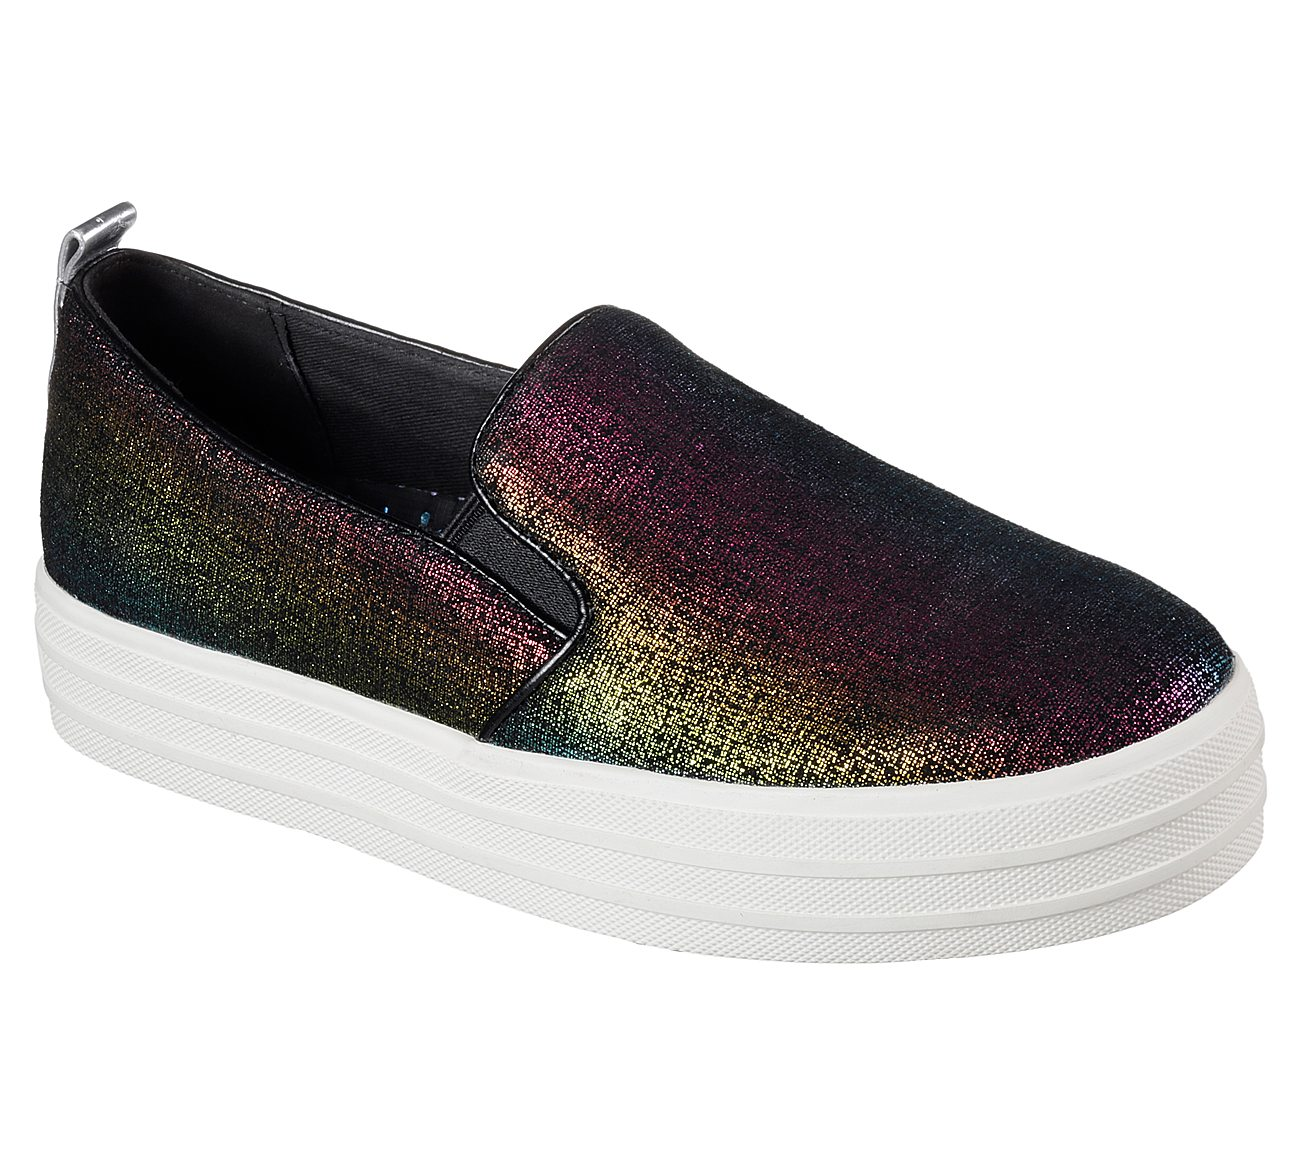 afec0fdef8fa Buy SKECHERS Double Up - Sunsets SKECHER Street Shoes only  45.00